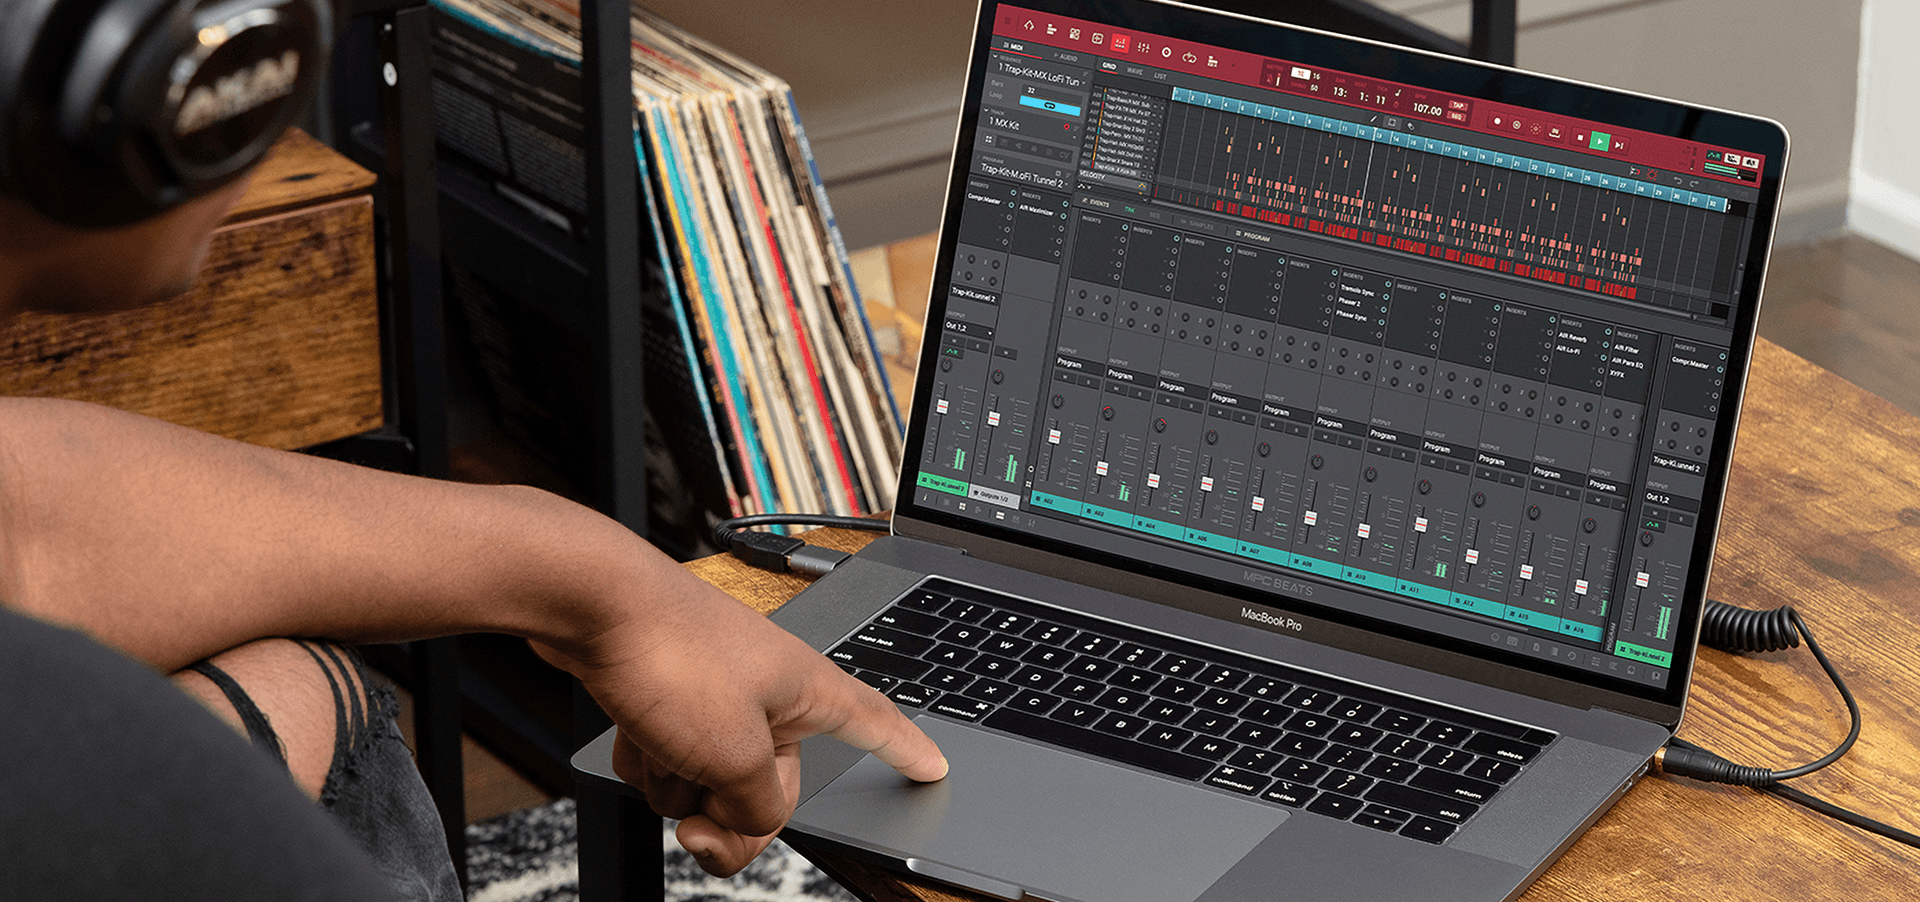 Akai Launches New FREE 'MPC Beats' Music-Making Software